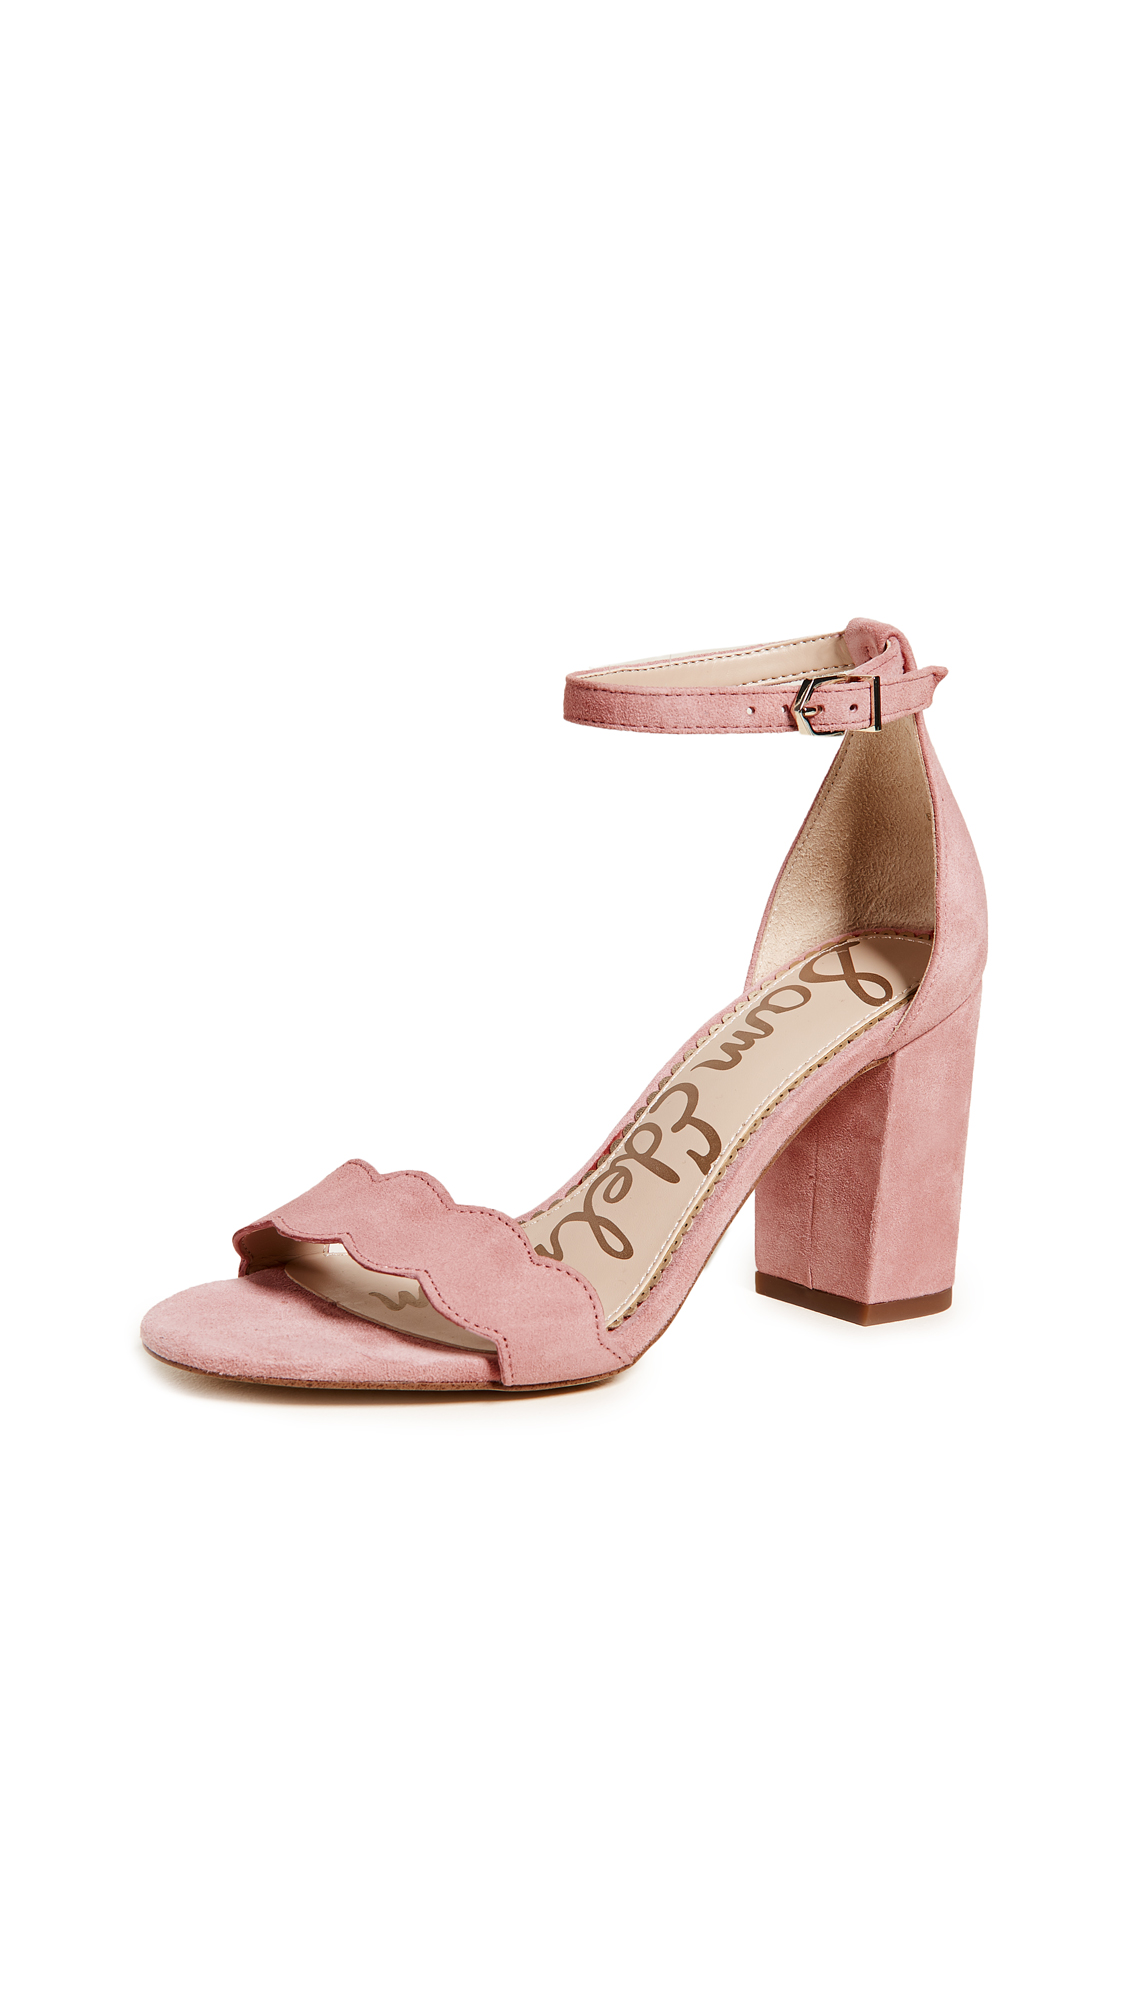 Sam Edelman Odila Sandals - Pink Lemonade